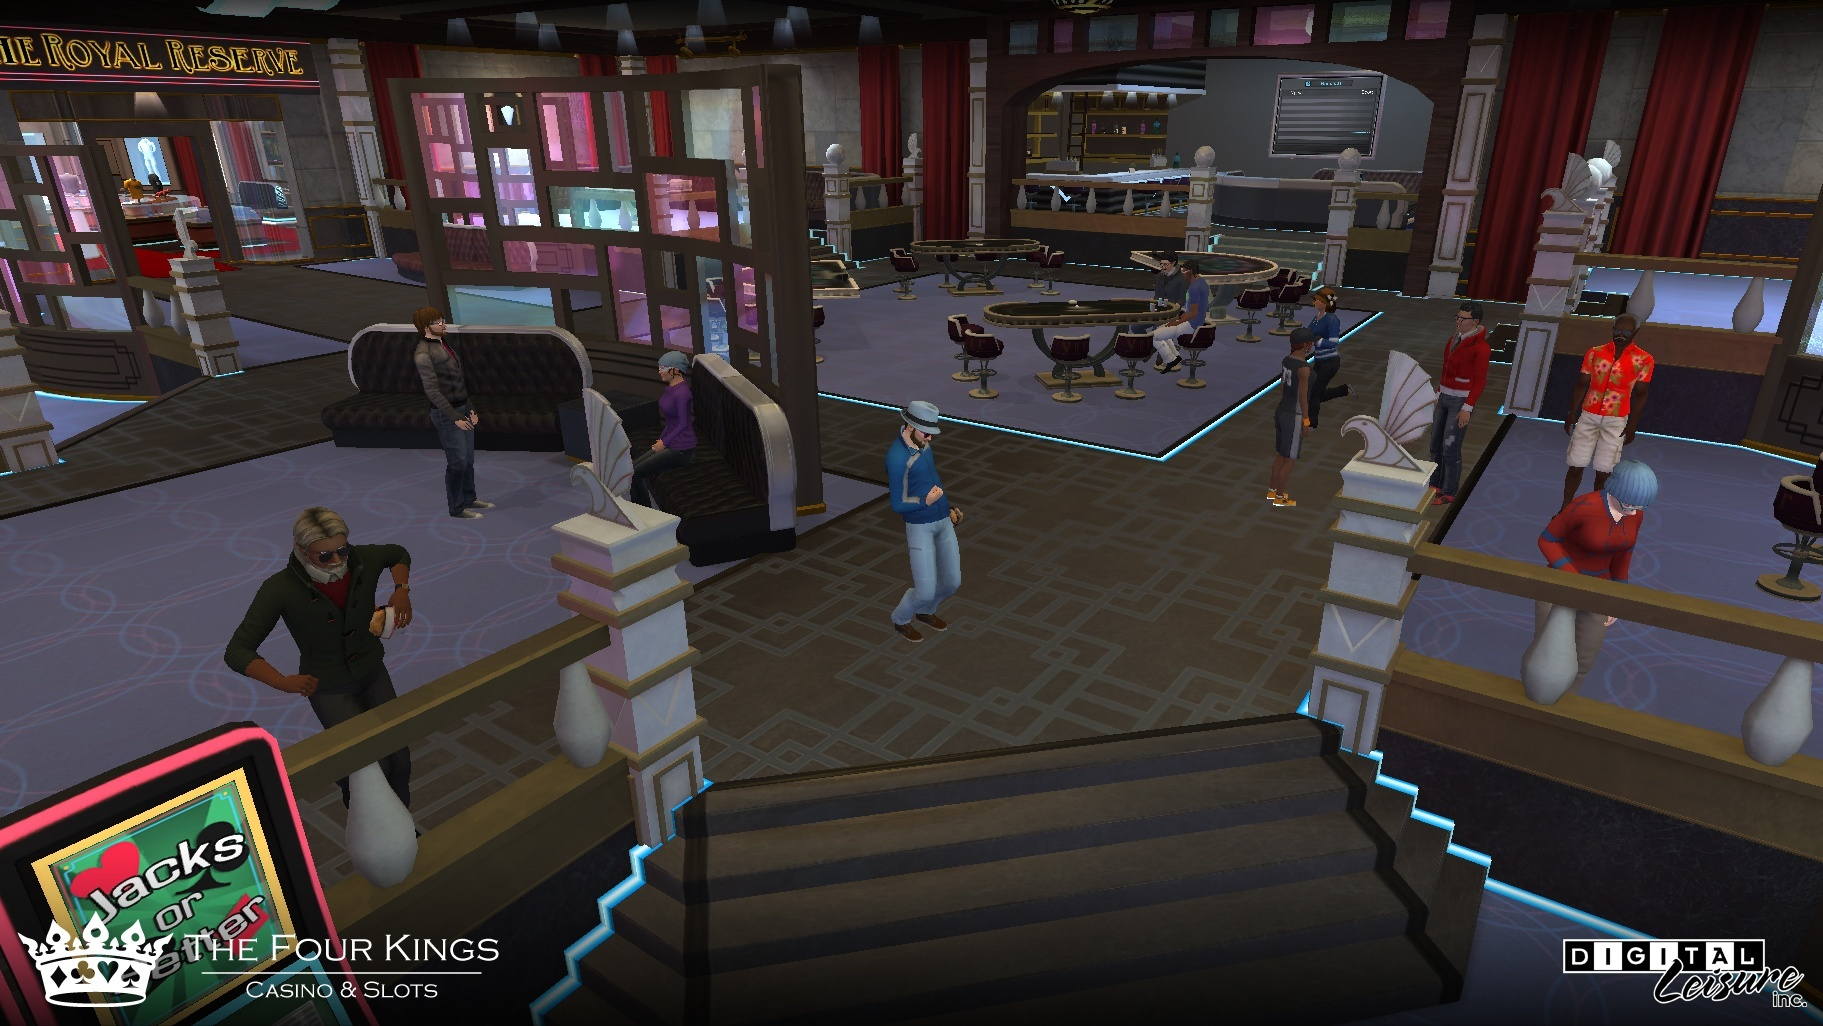 Karen chats with Digital Leisure about their new casino, The Four Kings, kwoman32, Oct 14, 2014, 7:07 PM, YourPSHome.net, jpg, ss5_VIP.jpg